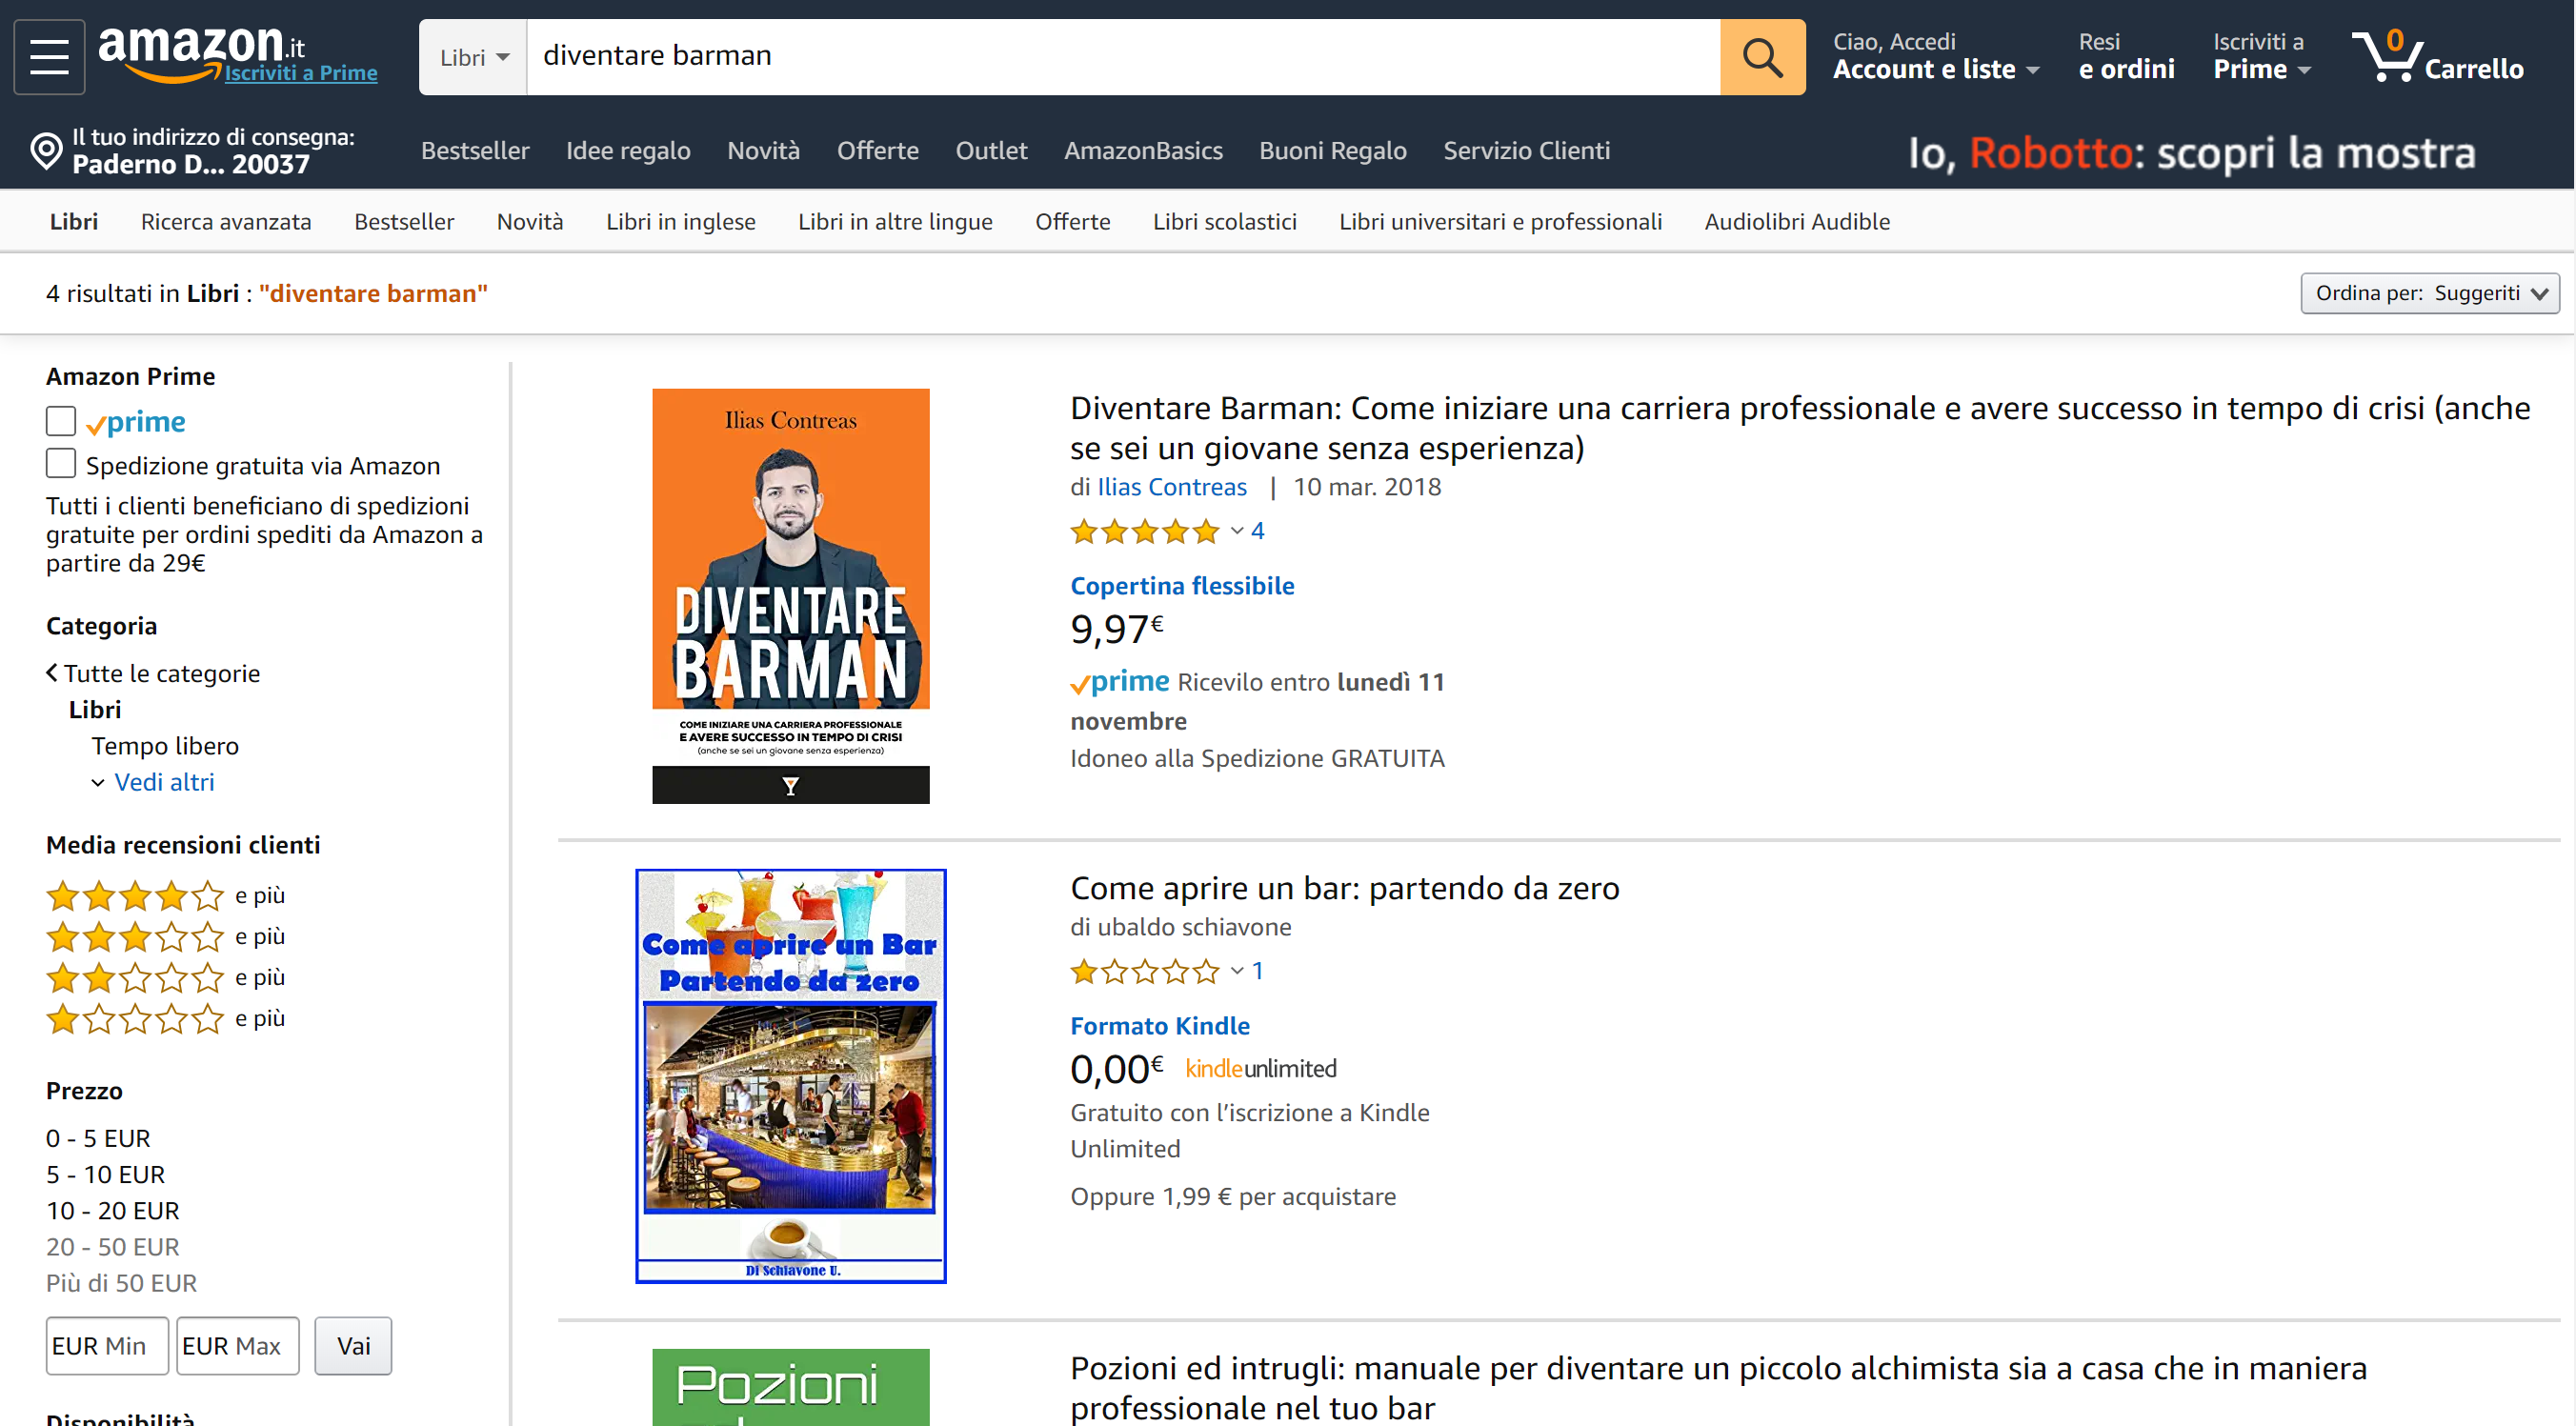 Diventare Barman Amazon